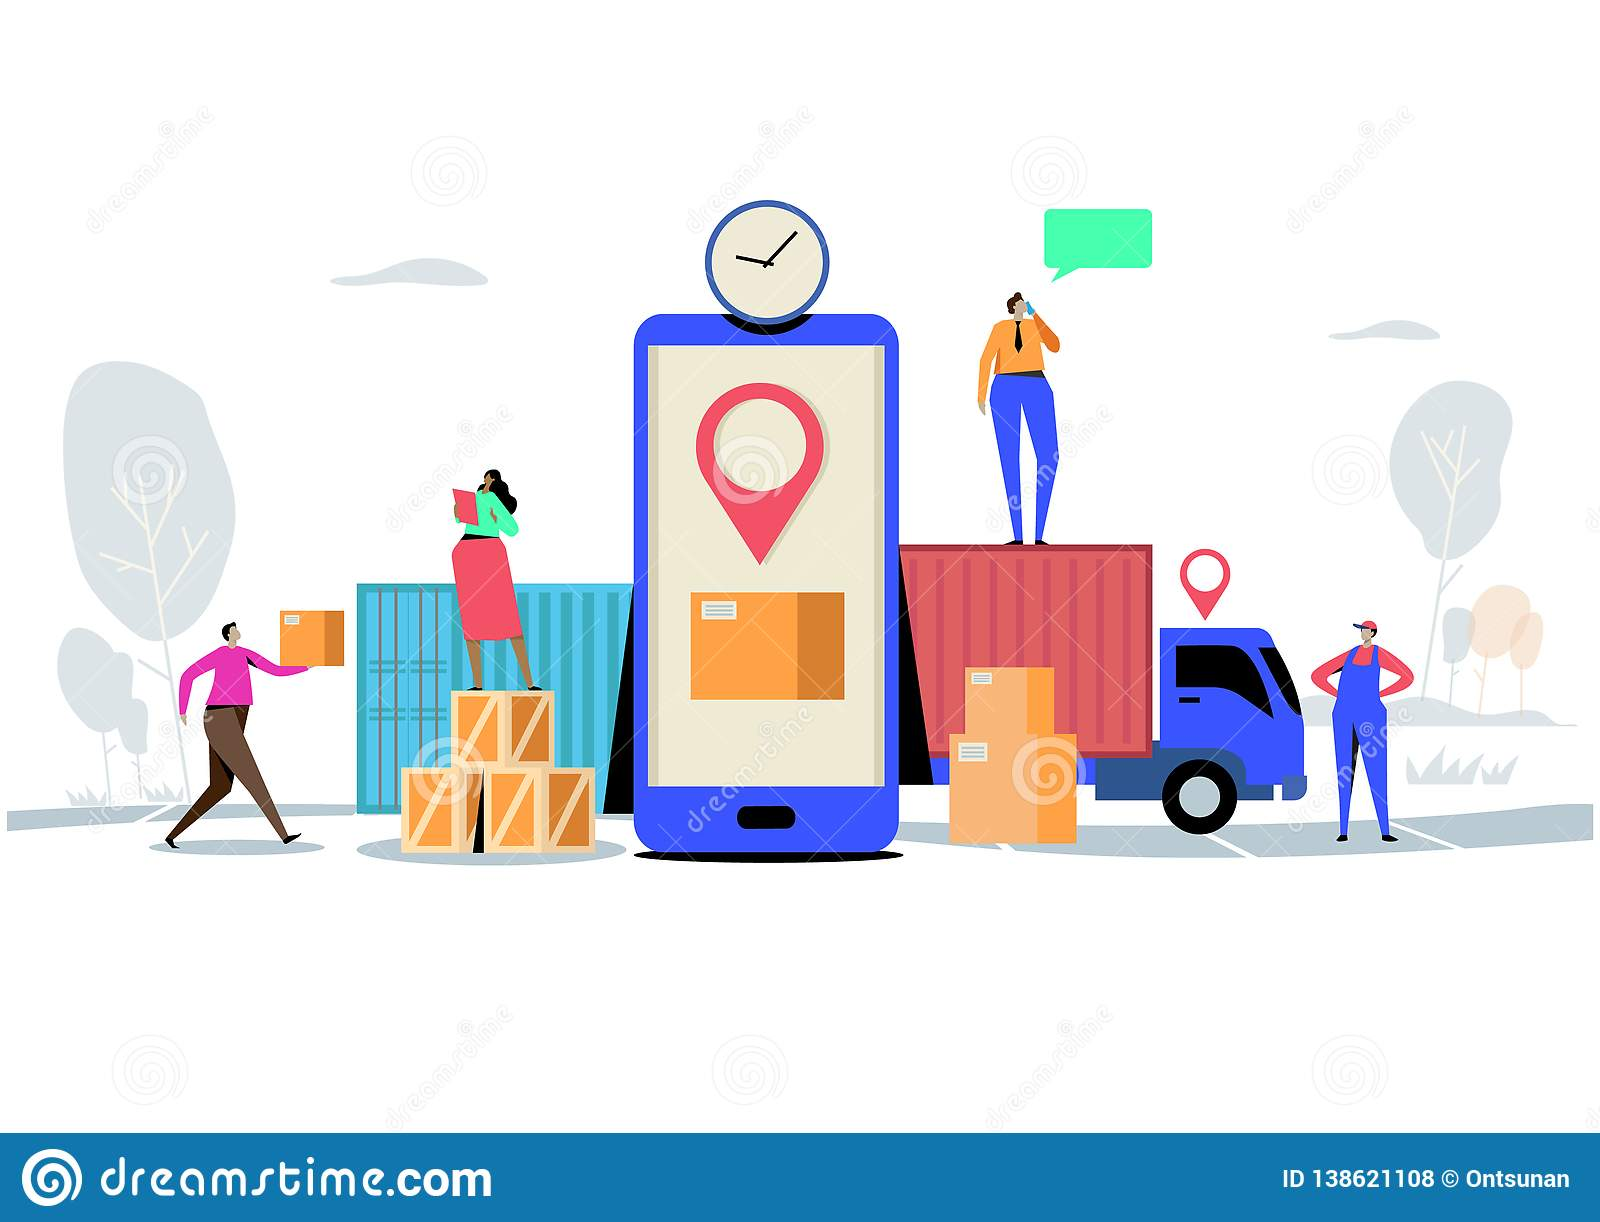 Online delivery service concept, Order, Cargo, Mobile App, GPS Tracking Service. Worldwide Logistic Delivery. Flat cartoon